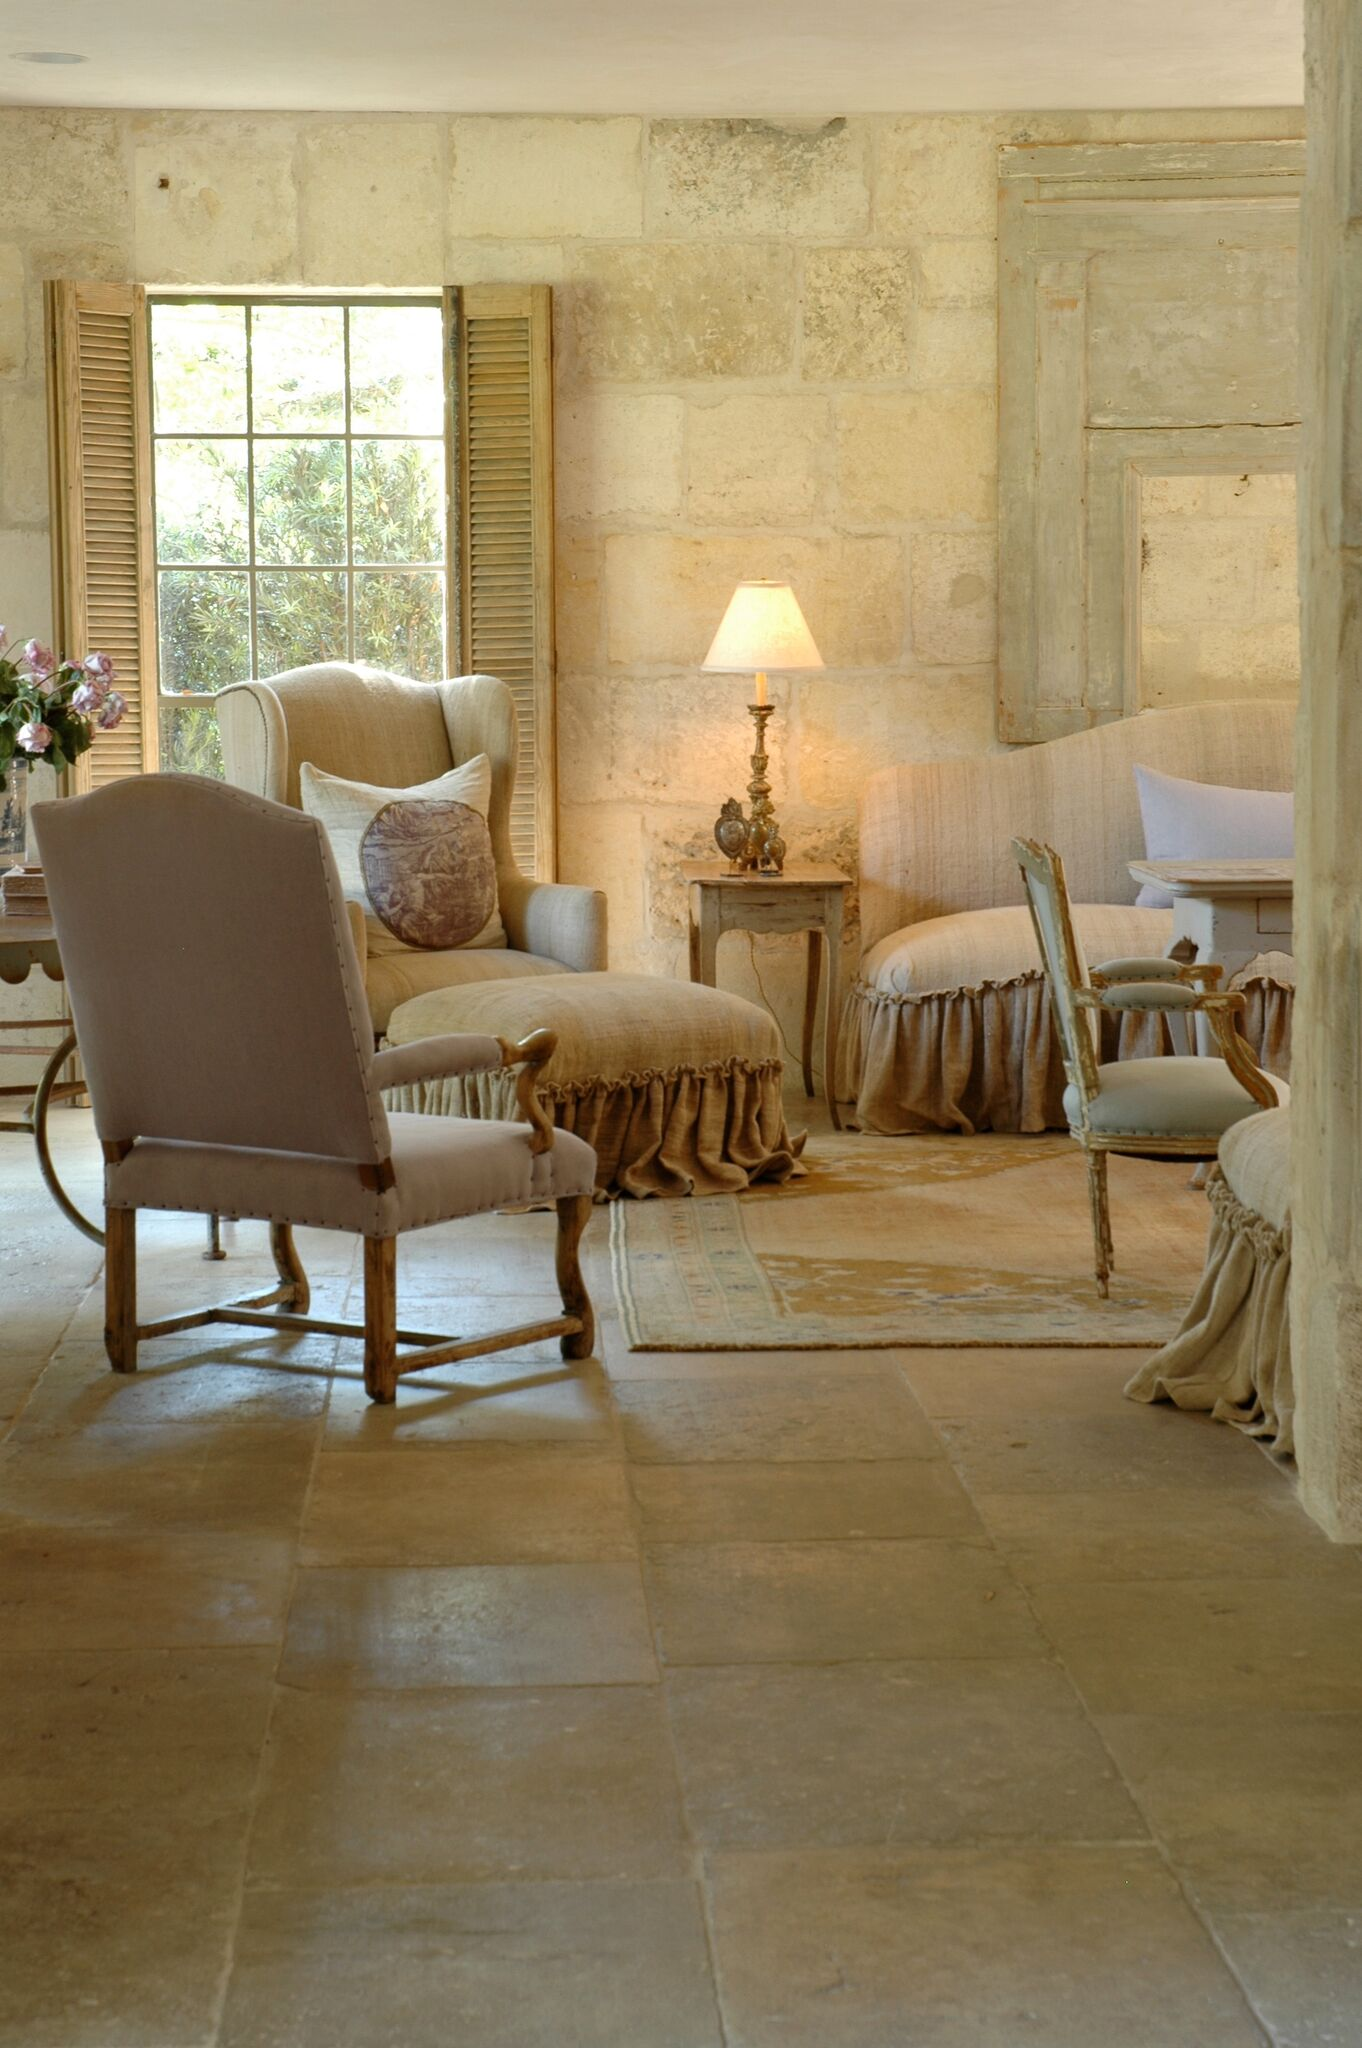 Chateau Domingue Timeless European Elegance and French farmhouse style converge in this house tour of founder Ruth Gay's home on Hello Lovely. Reclaimed stone, antique doors and mantels, and one of a kind architectural elements. #housetour #frenchcountry #frenchfarmhouse #europeanfarmhouse #chateaudomingue #rusticdecor #pamelapierce #elegantdecor #livingroom